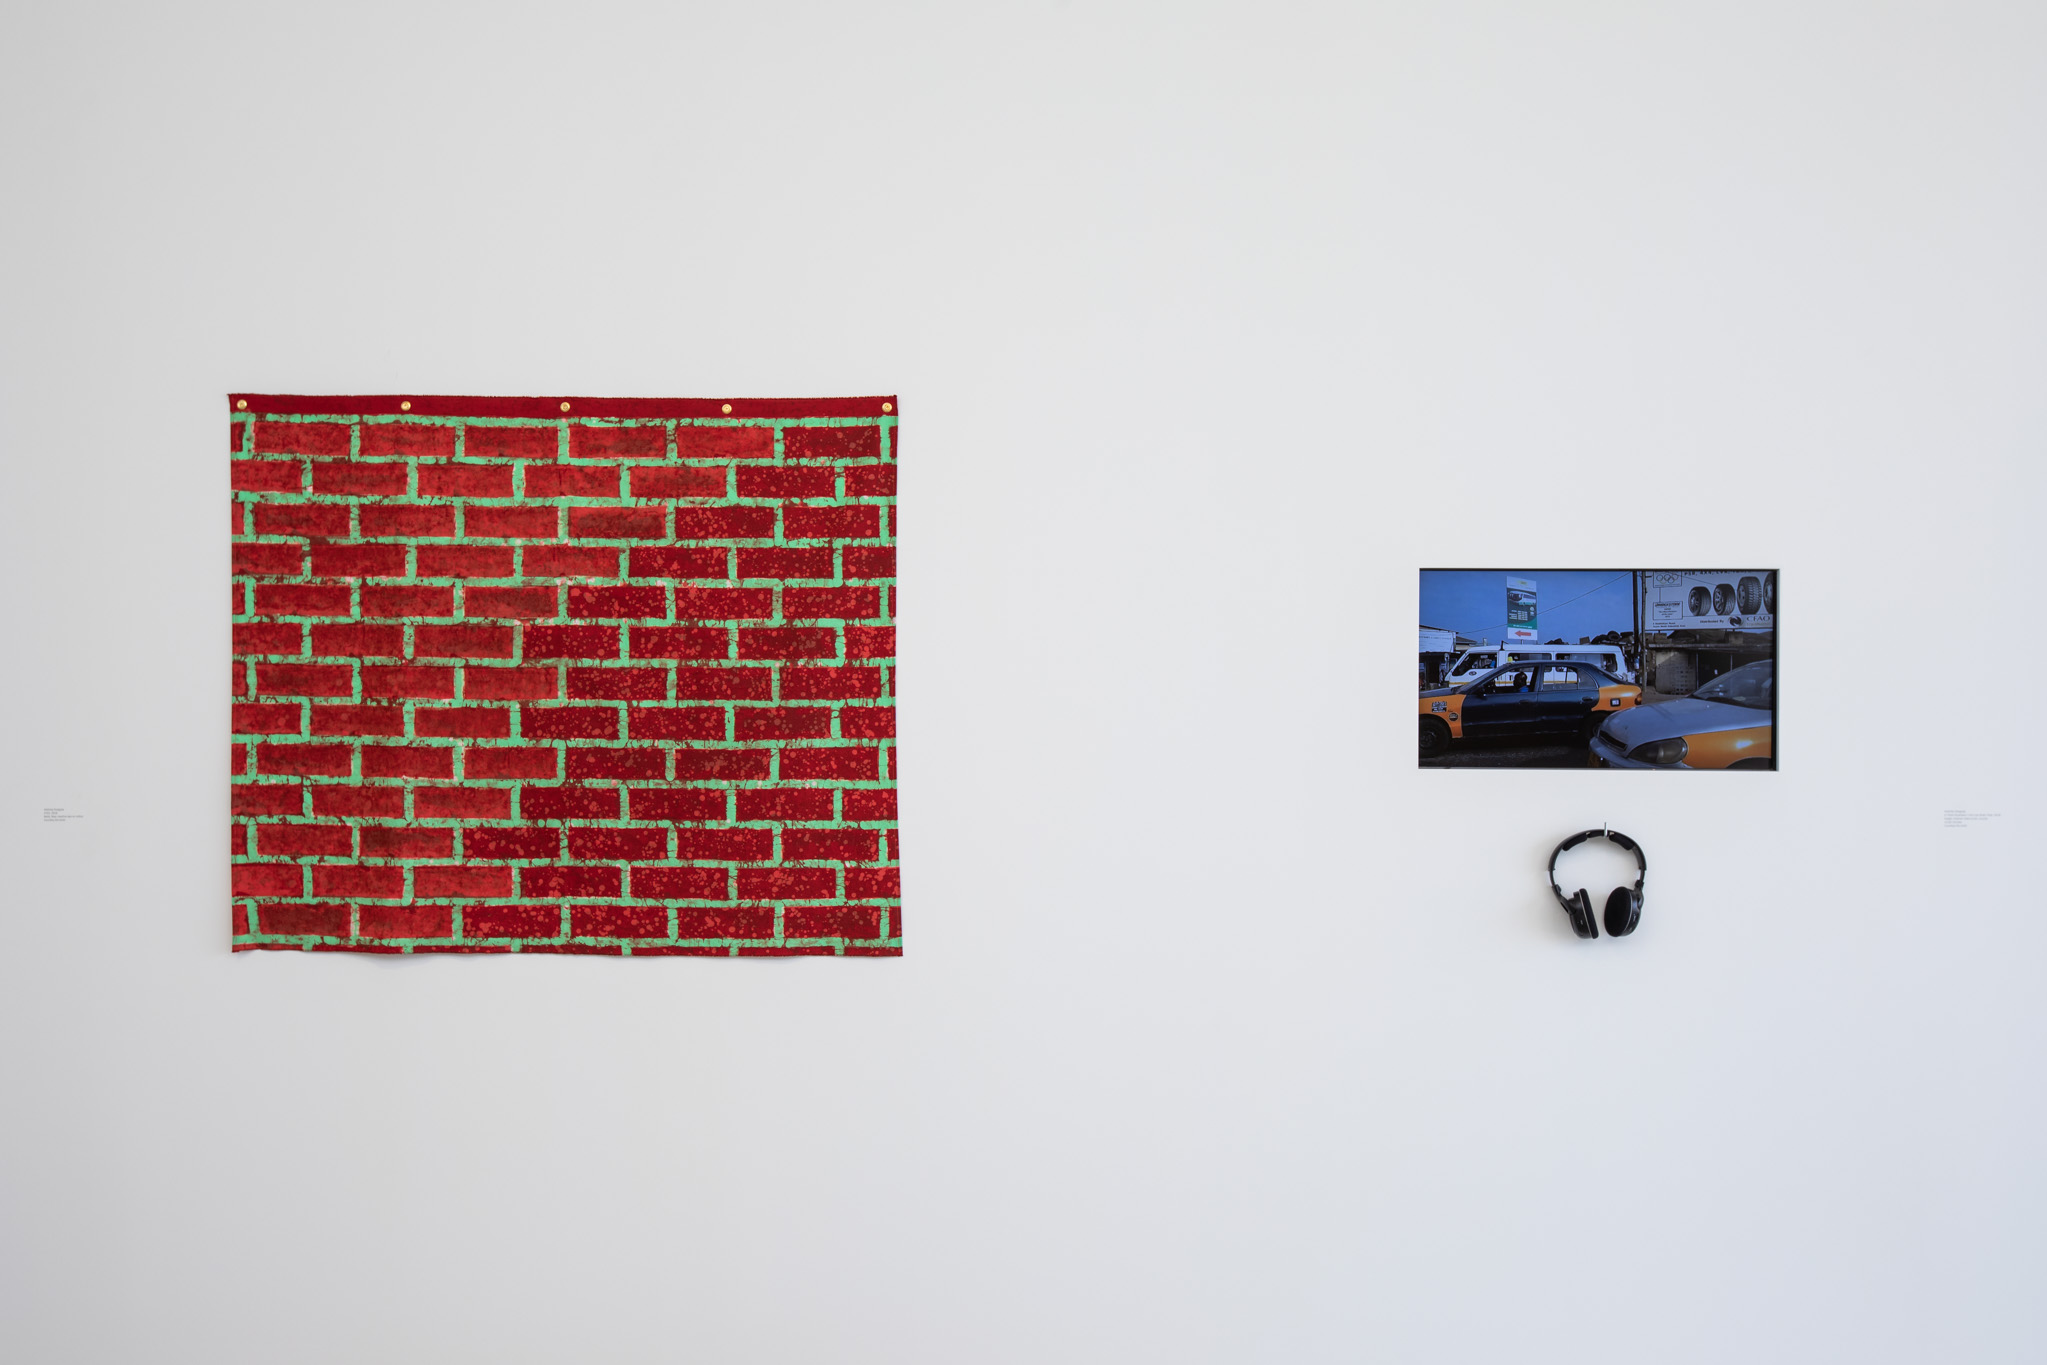 Install_shot__Brick2_Dusty Kessler.jpg